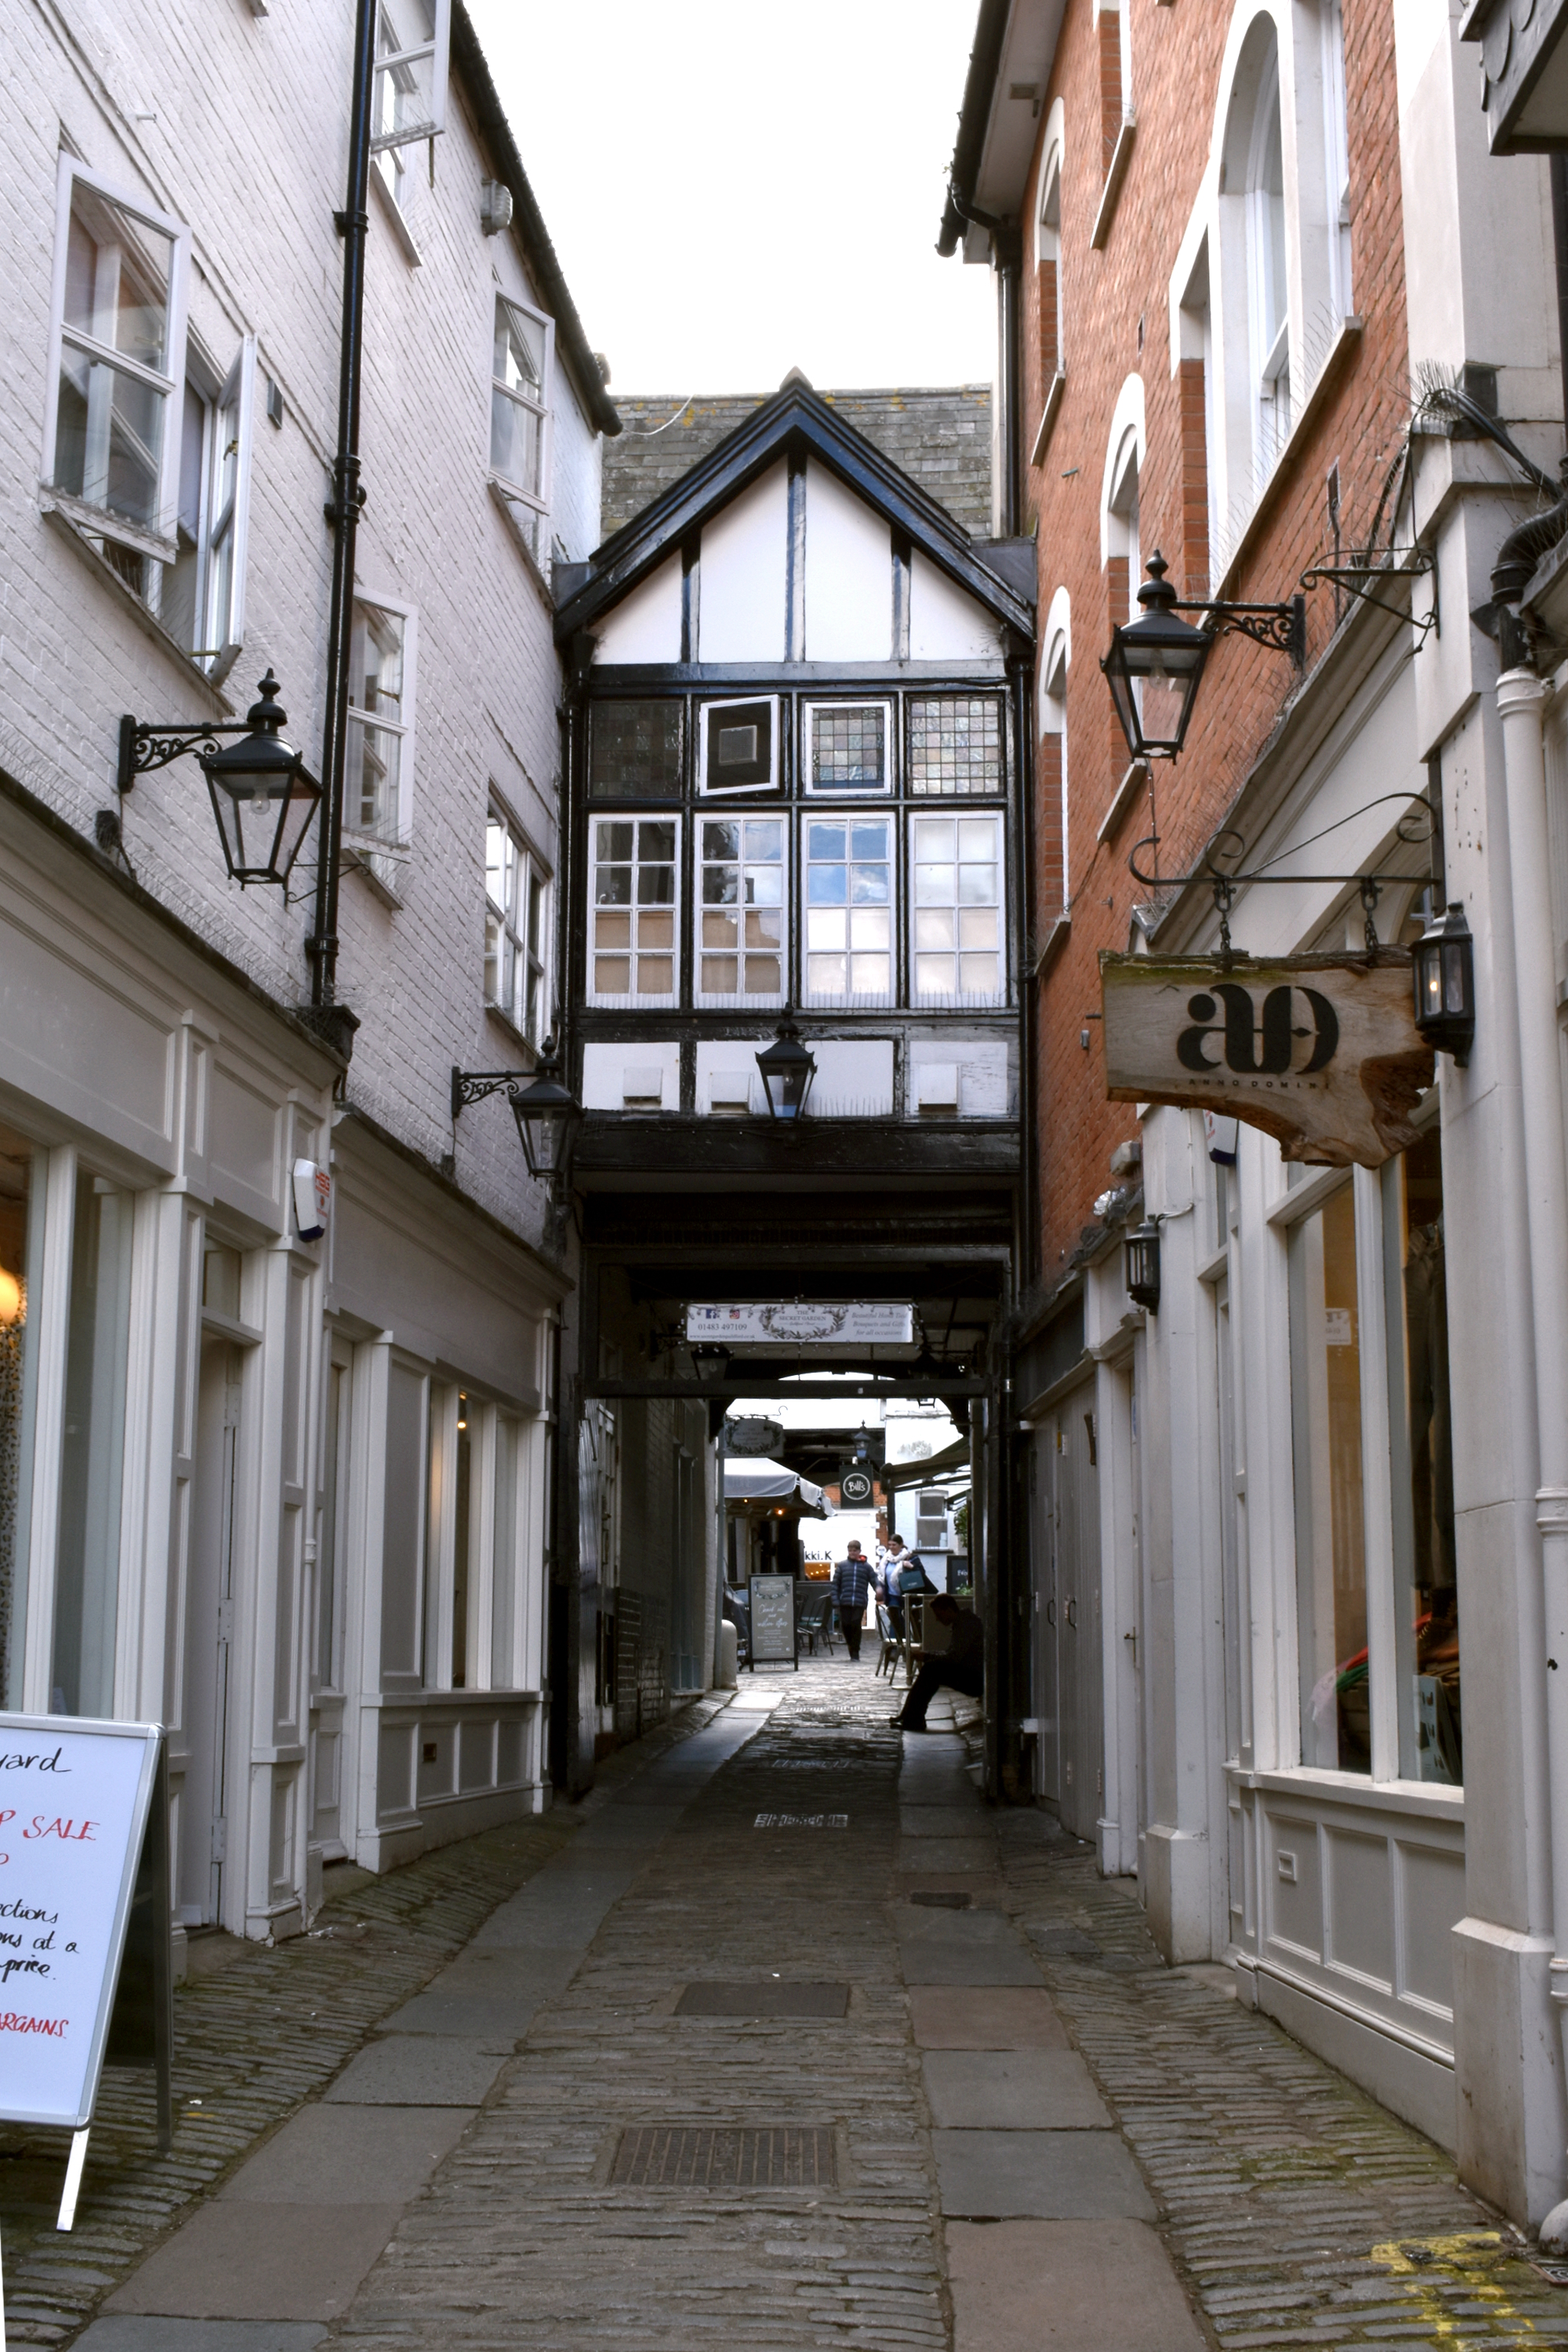 view of medieval archway in town centre